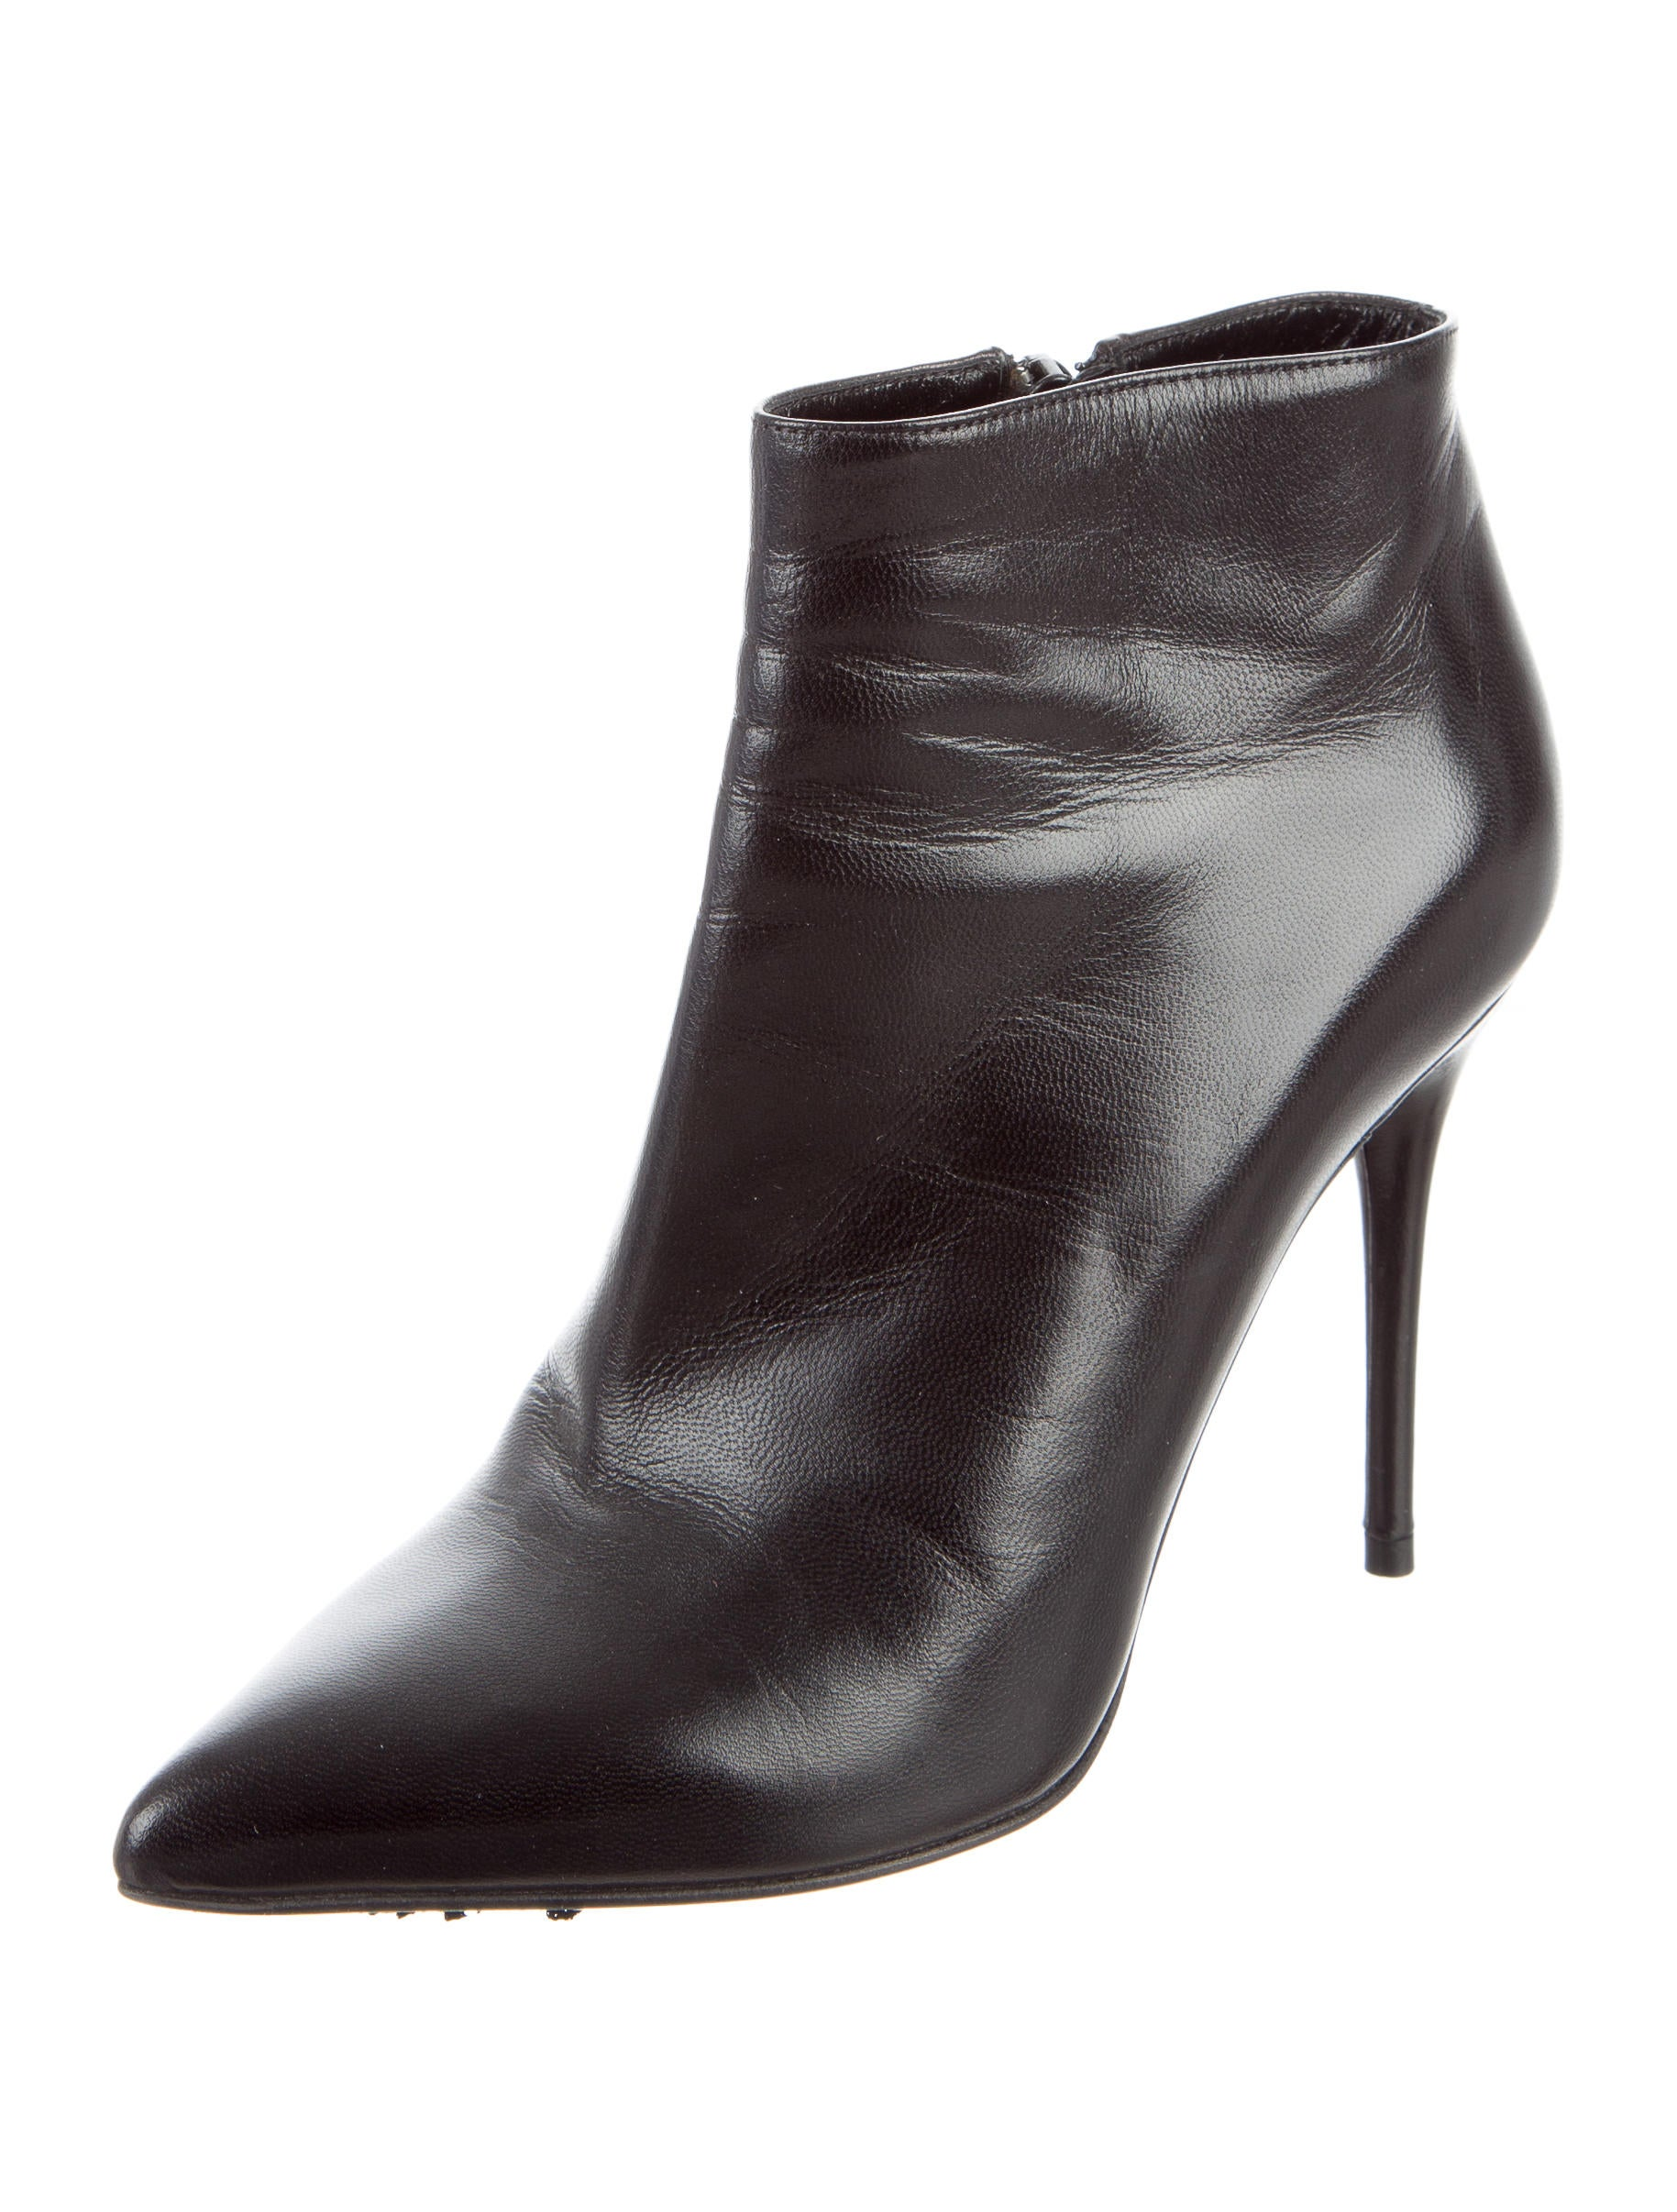 mcqueen leather pointed toe boots shoes